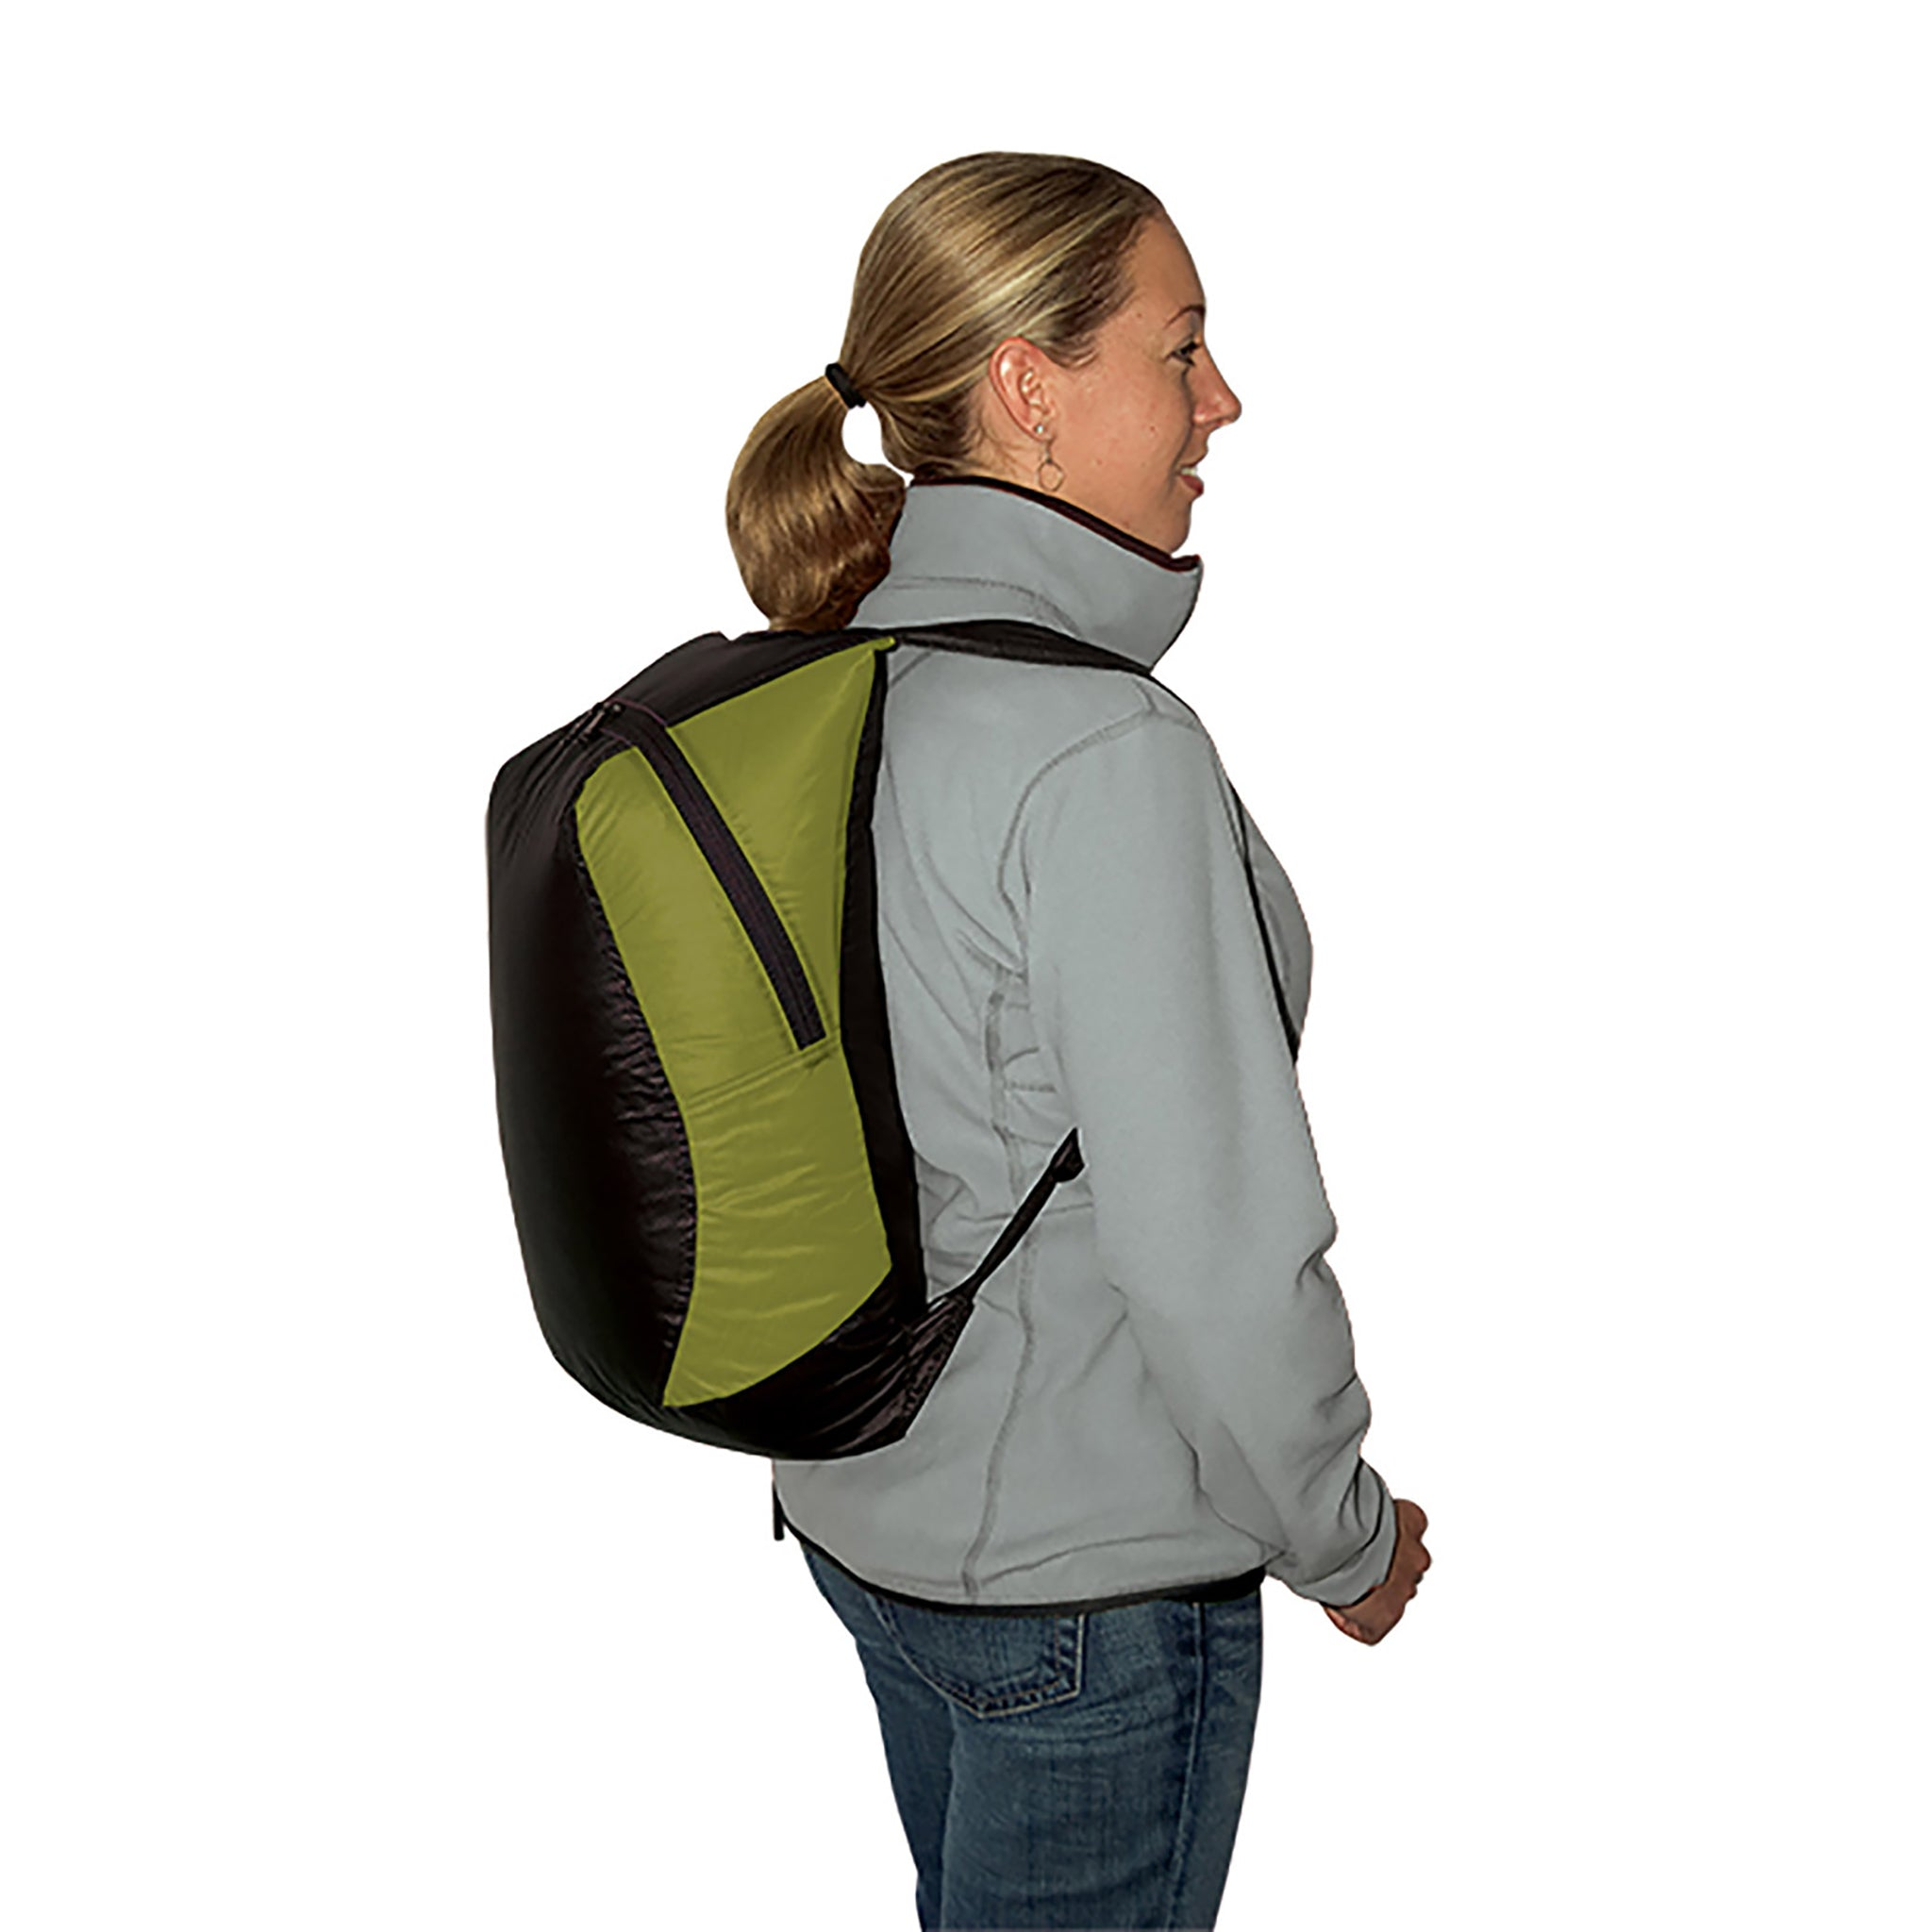 Travel Compressible Daypack _ lime